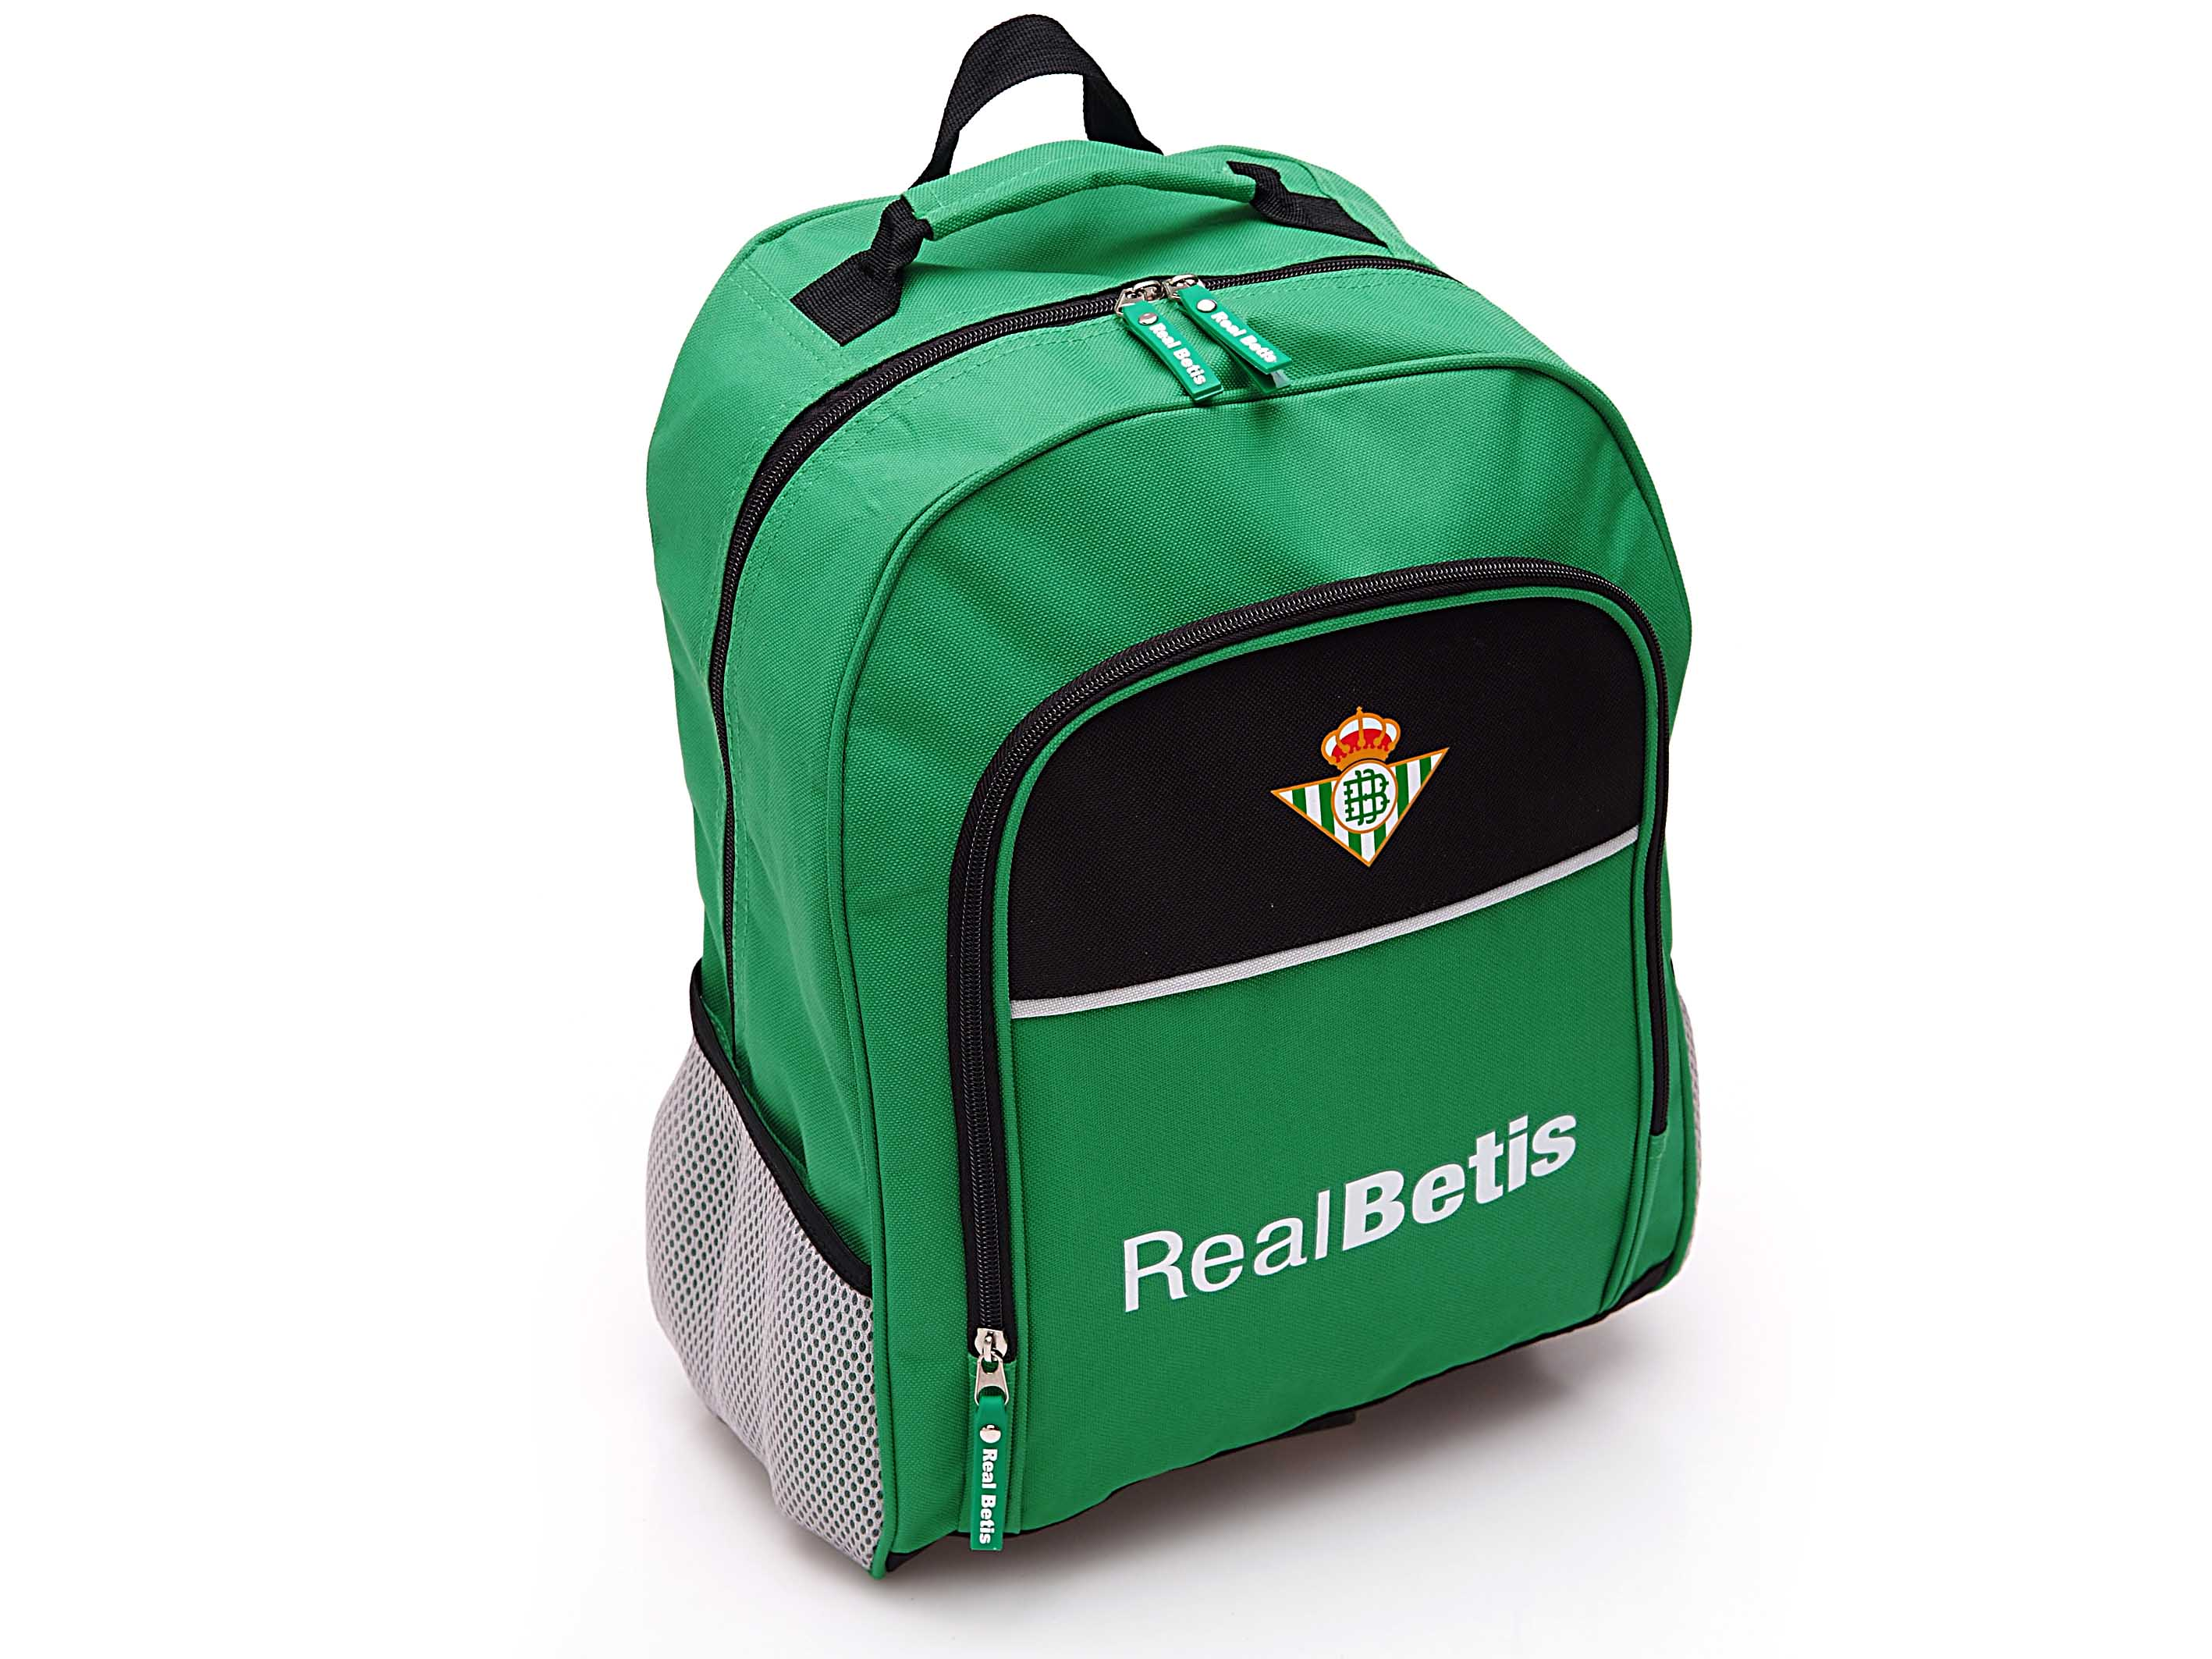 MOCHILA GRANDE ADAPTABLE AL CARRO REAL BETIS